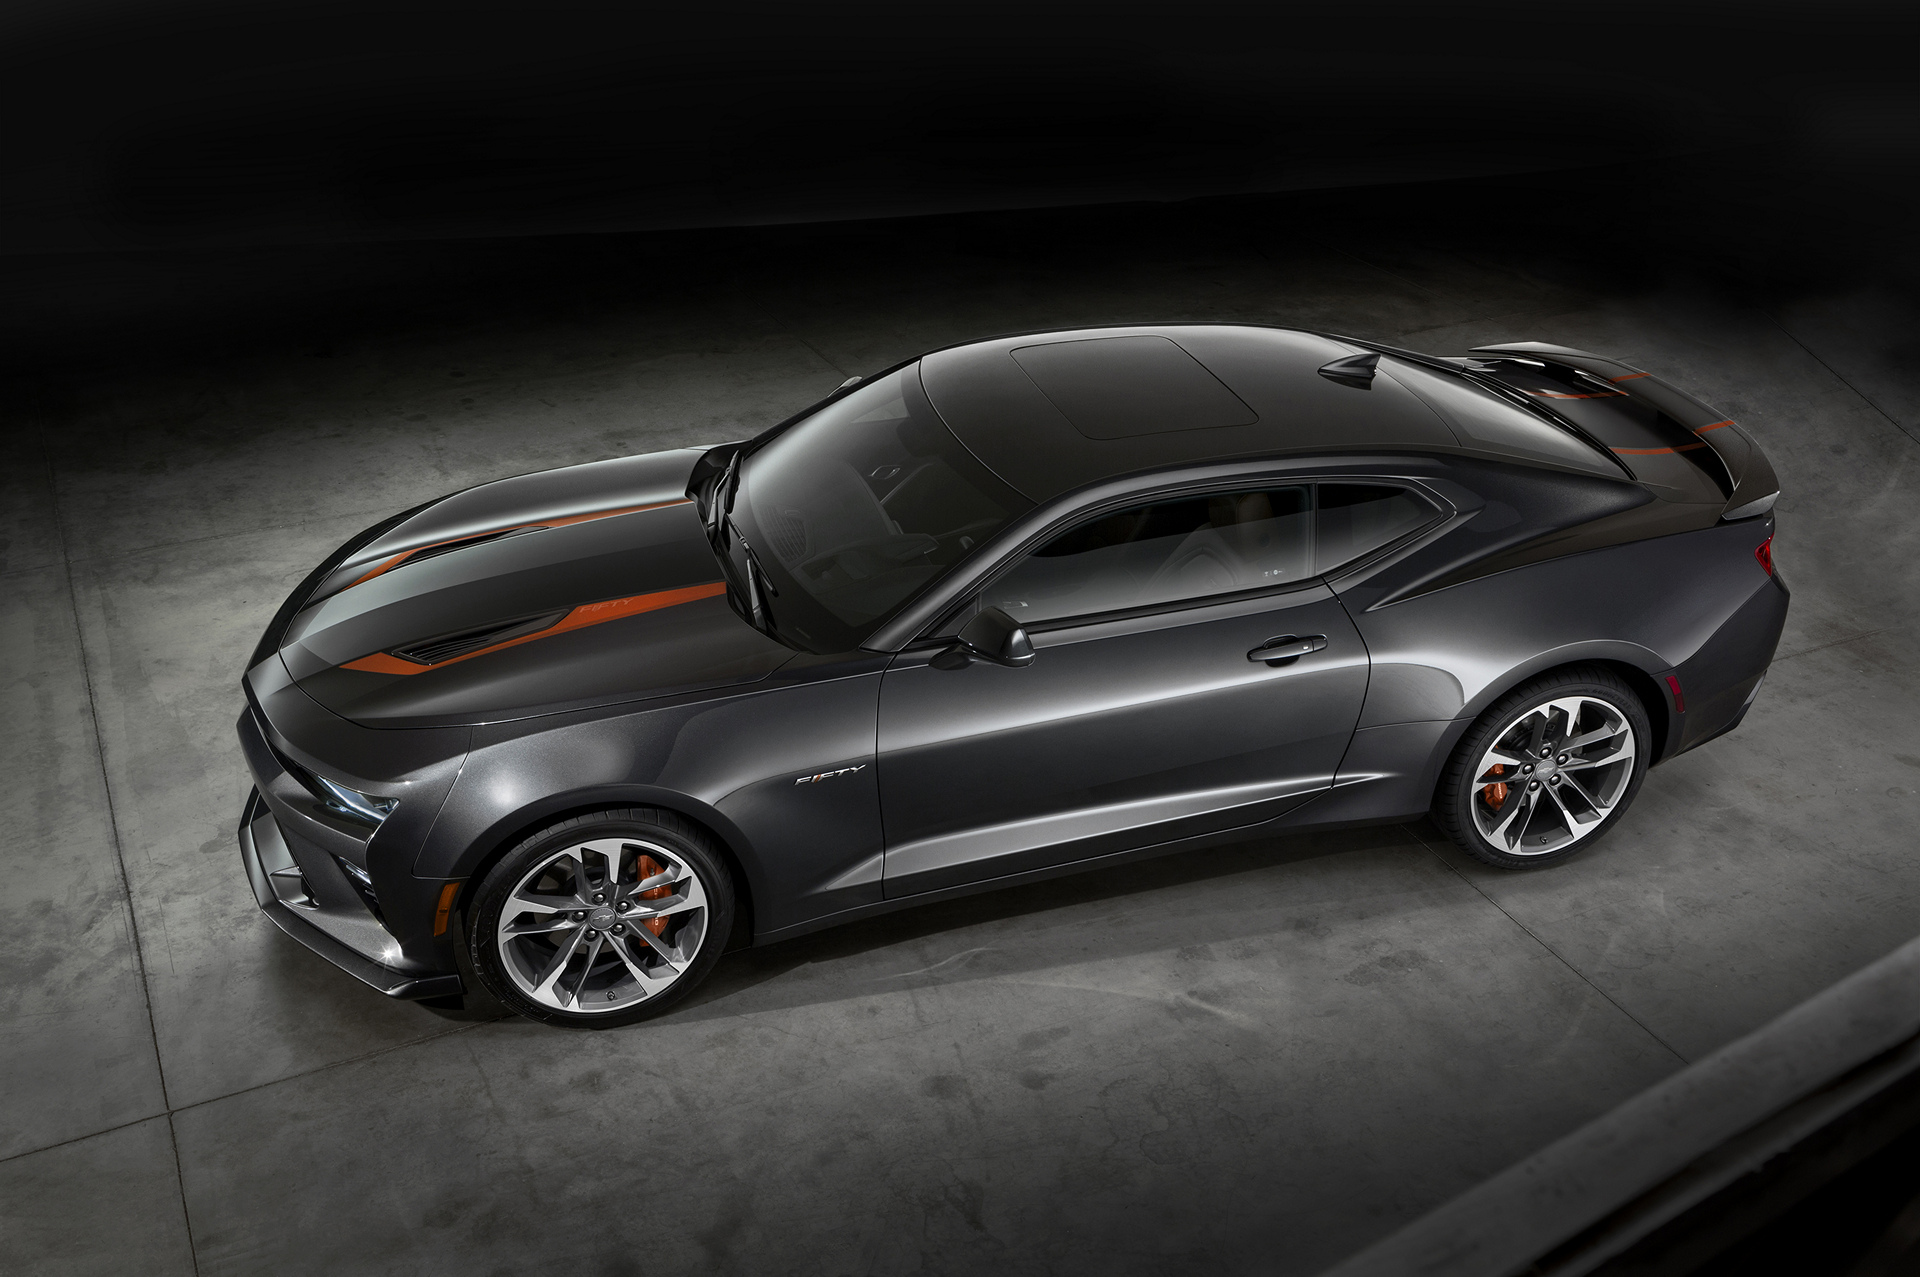 2017 Camaro 50th Anniversary Special Edition © General Motors2017 Camaro 50th Anniversary Special Edition © General Motors